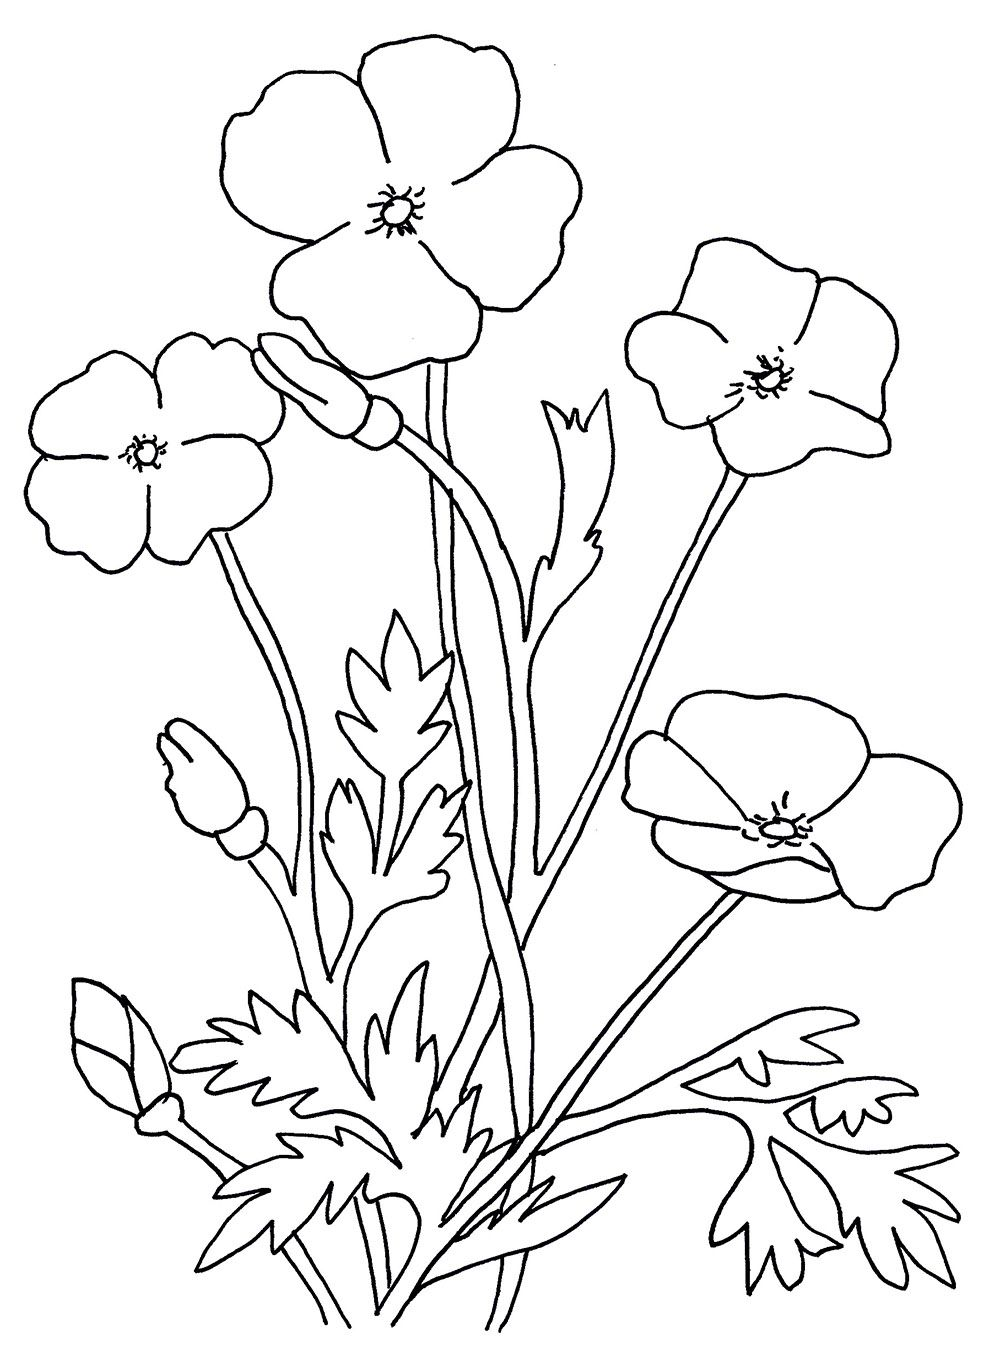 blank poppy flowers coloring sheets decoloring coloring home pages - Poppy Flower Coloring Pages